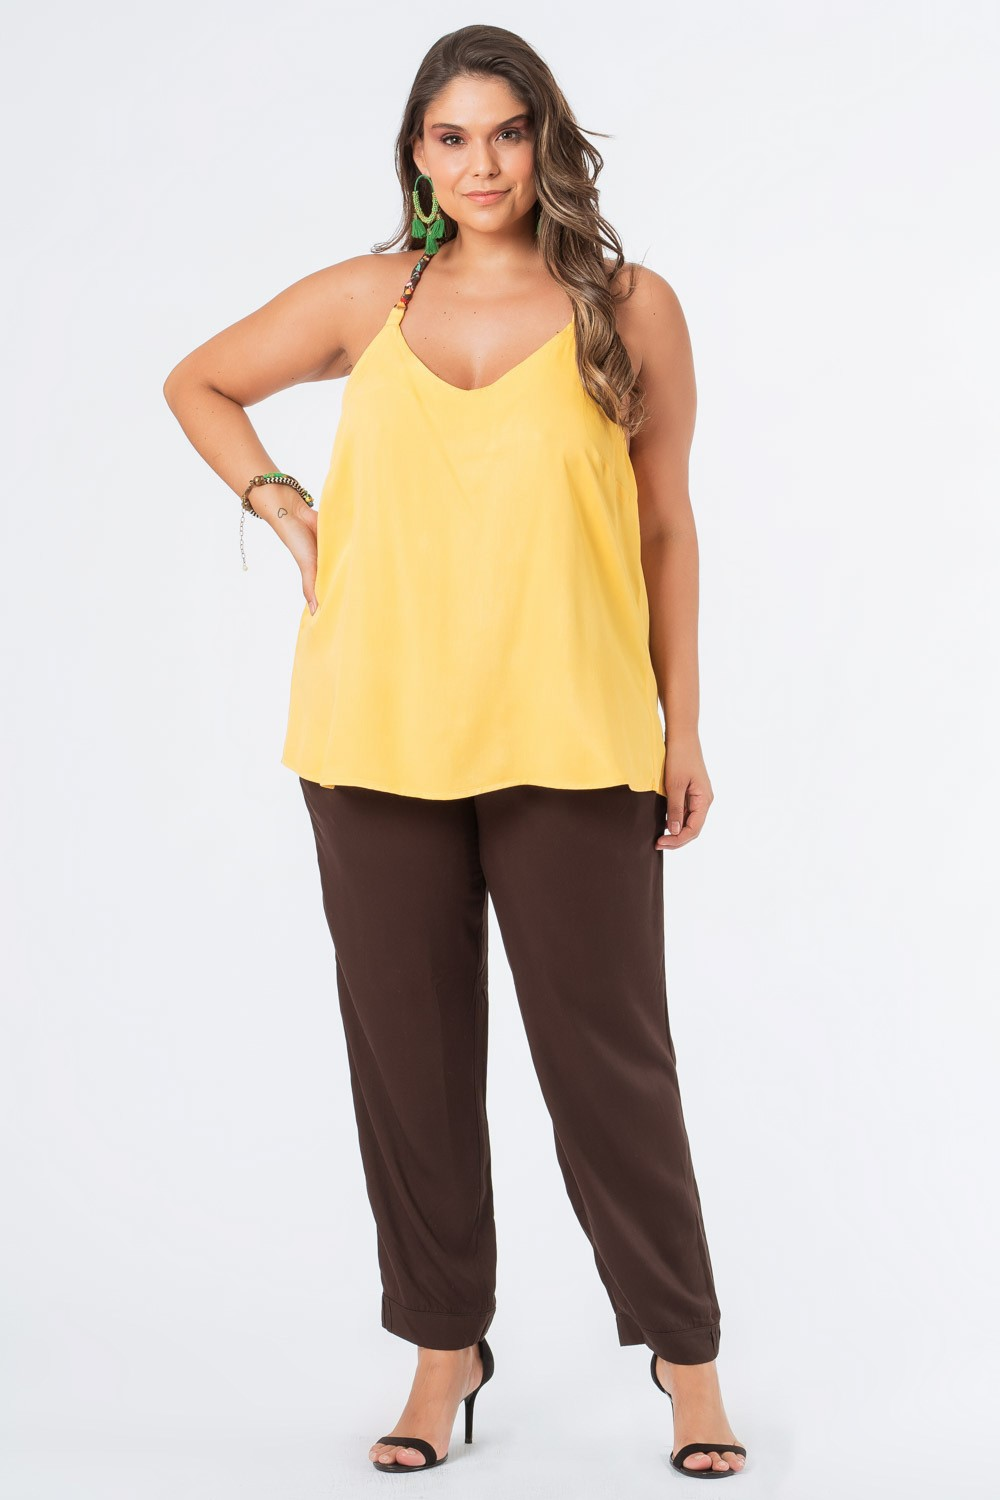 REGATA LISA PLUS SIZE ALÇA AVIAMENTO AMARELO